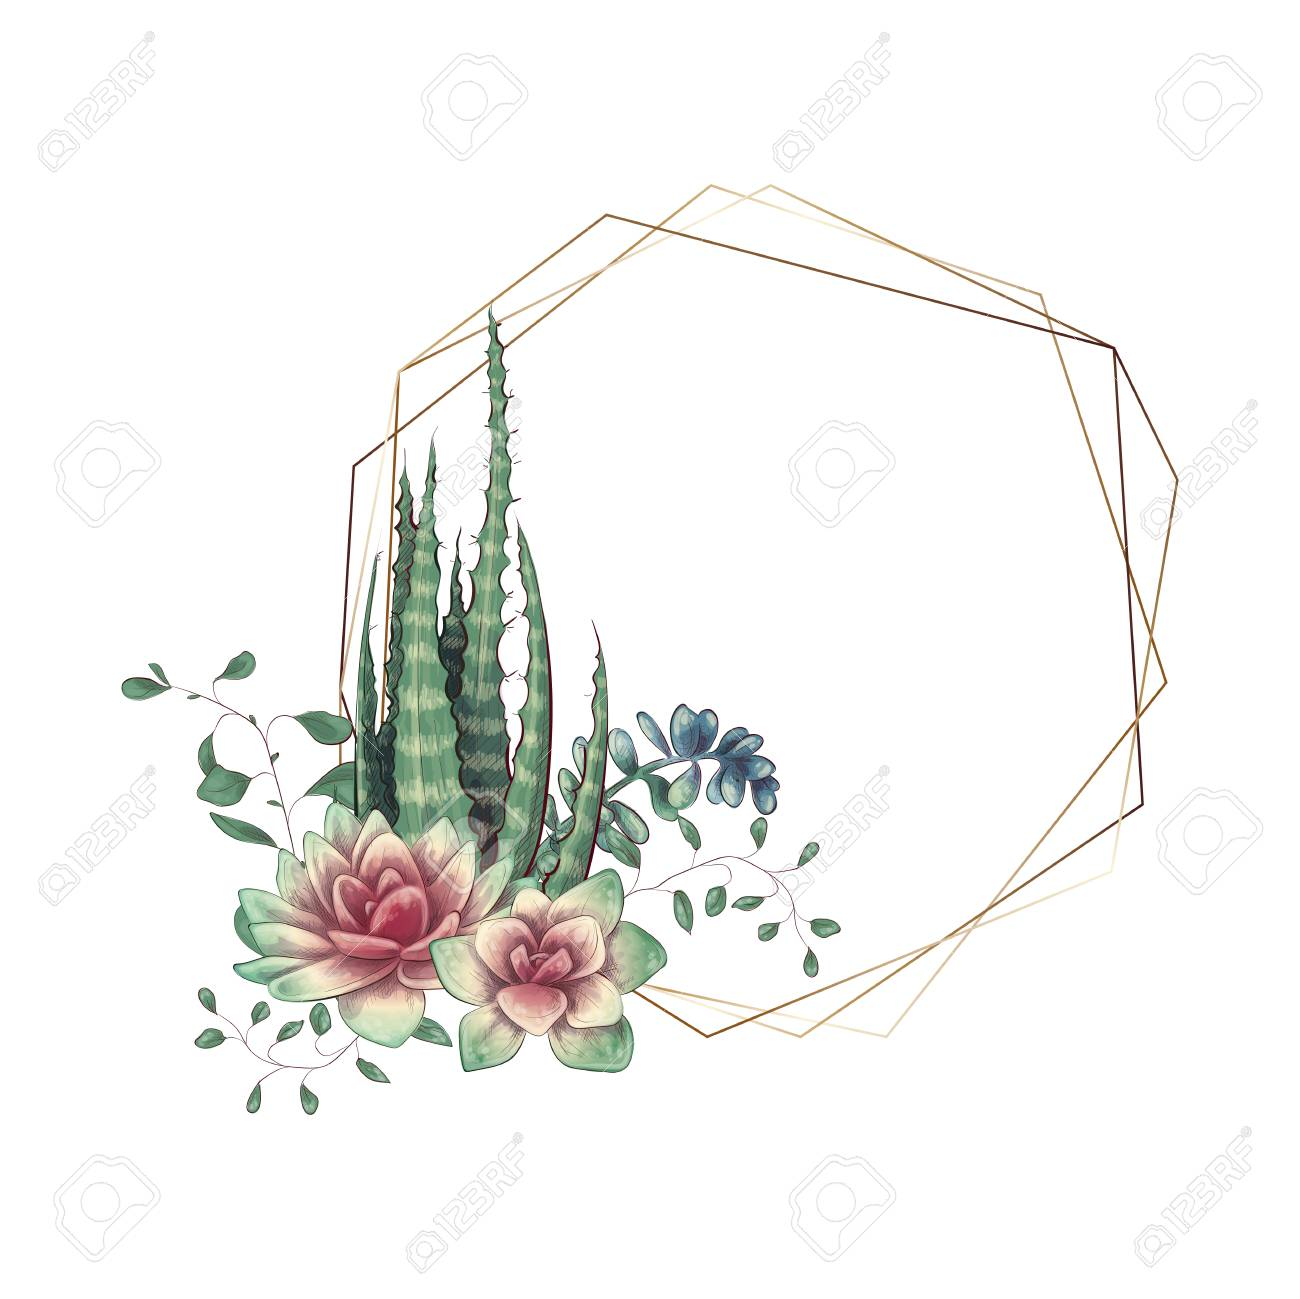 Wedding Frame With Succulent And Cacti Vector Illustration Royalty Free Cliparts Vectors And Stock Illustration Image 112917627